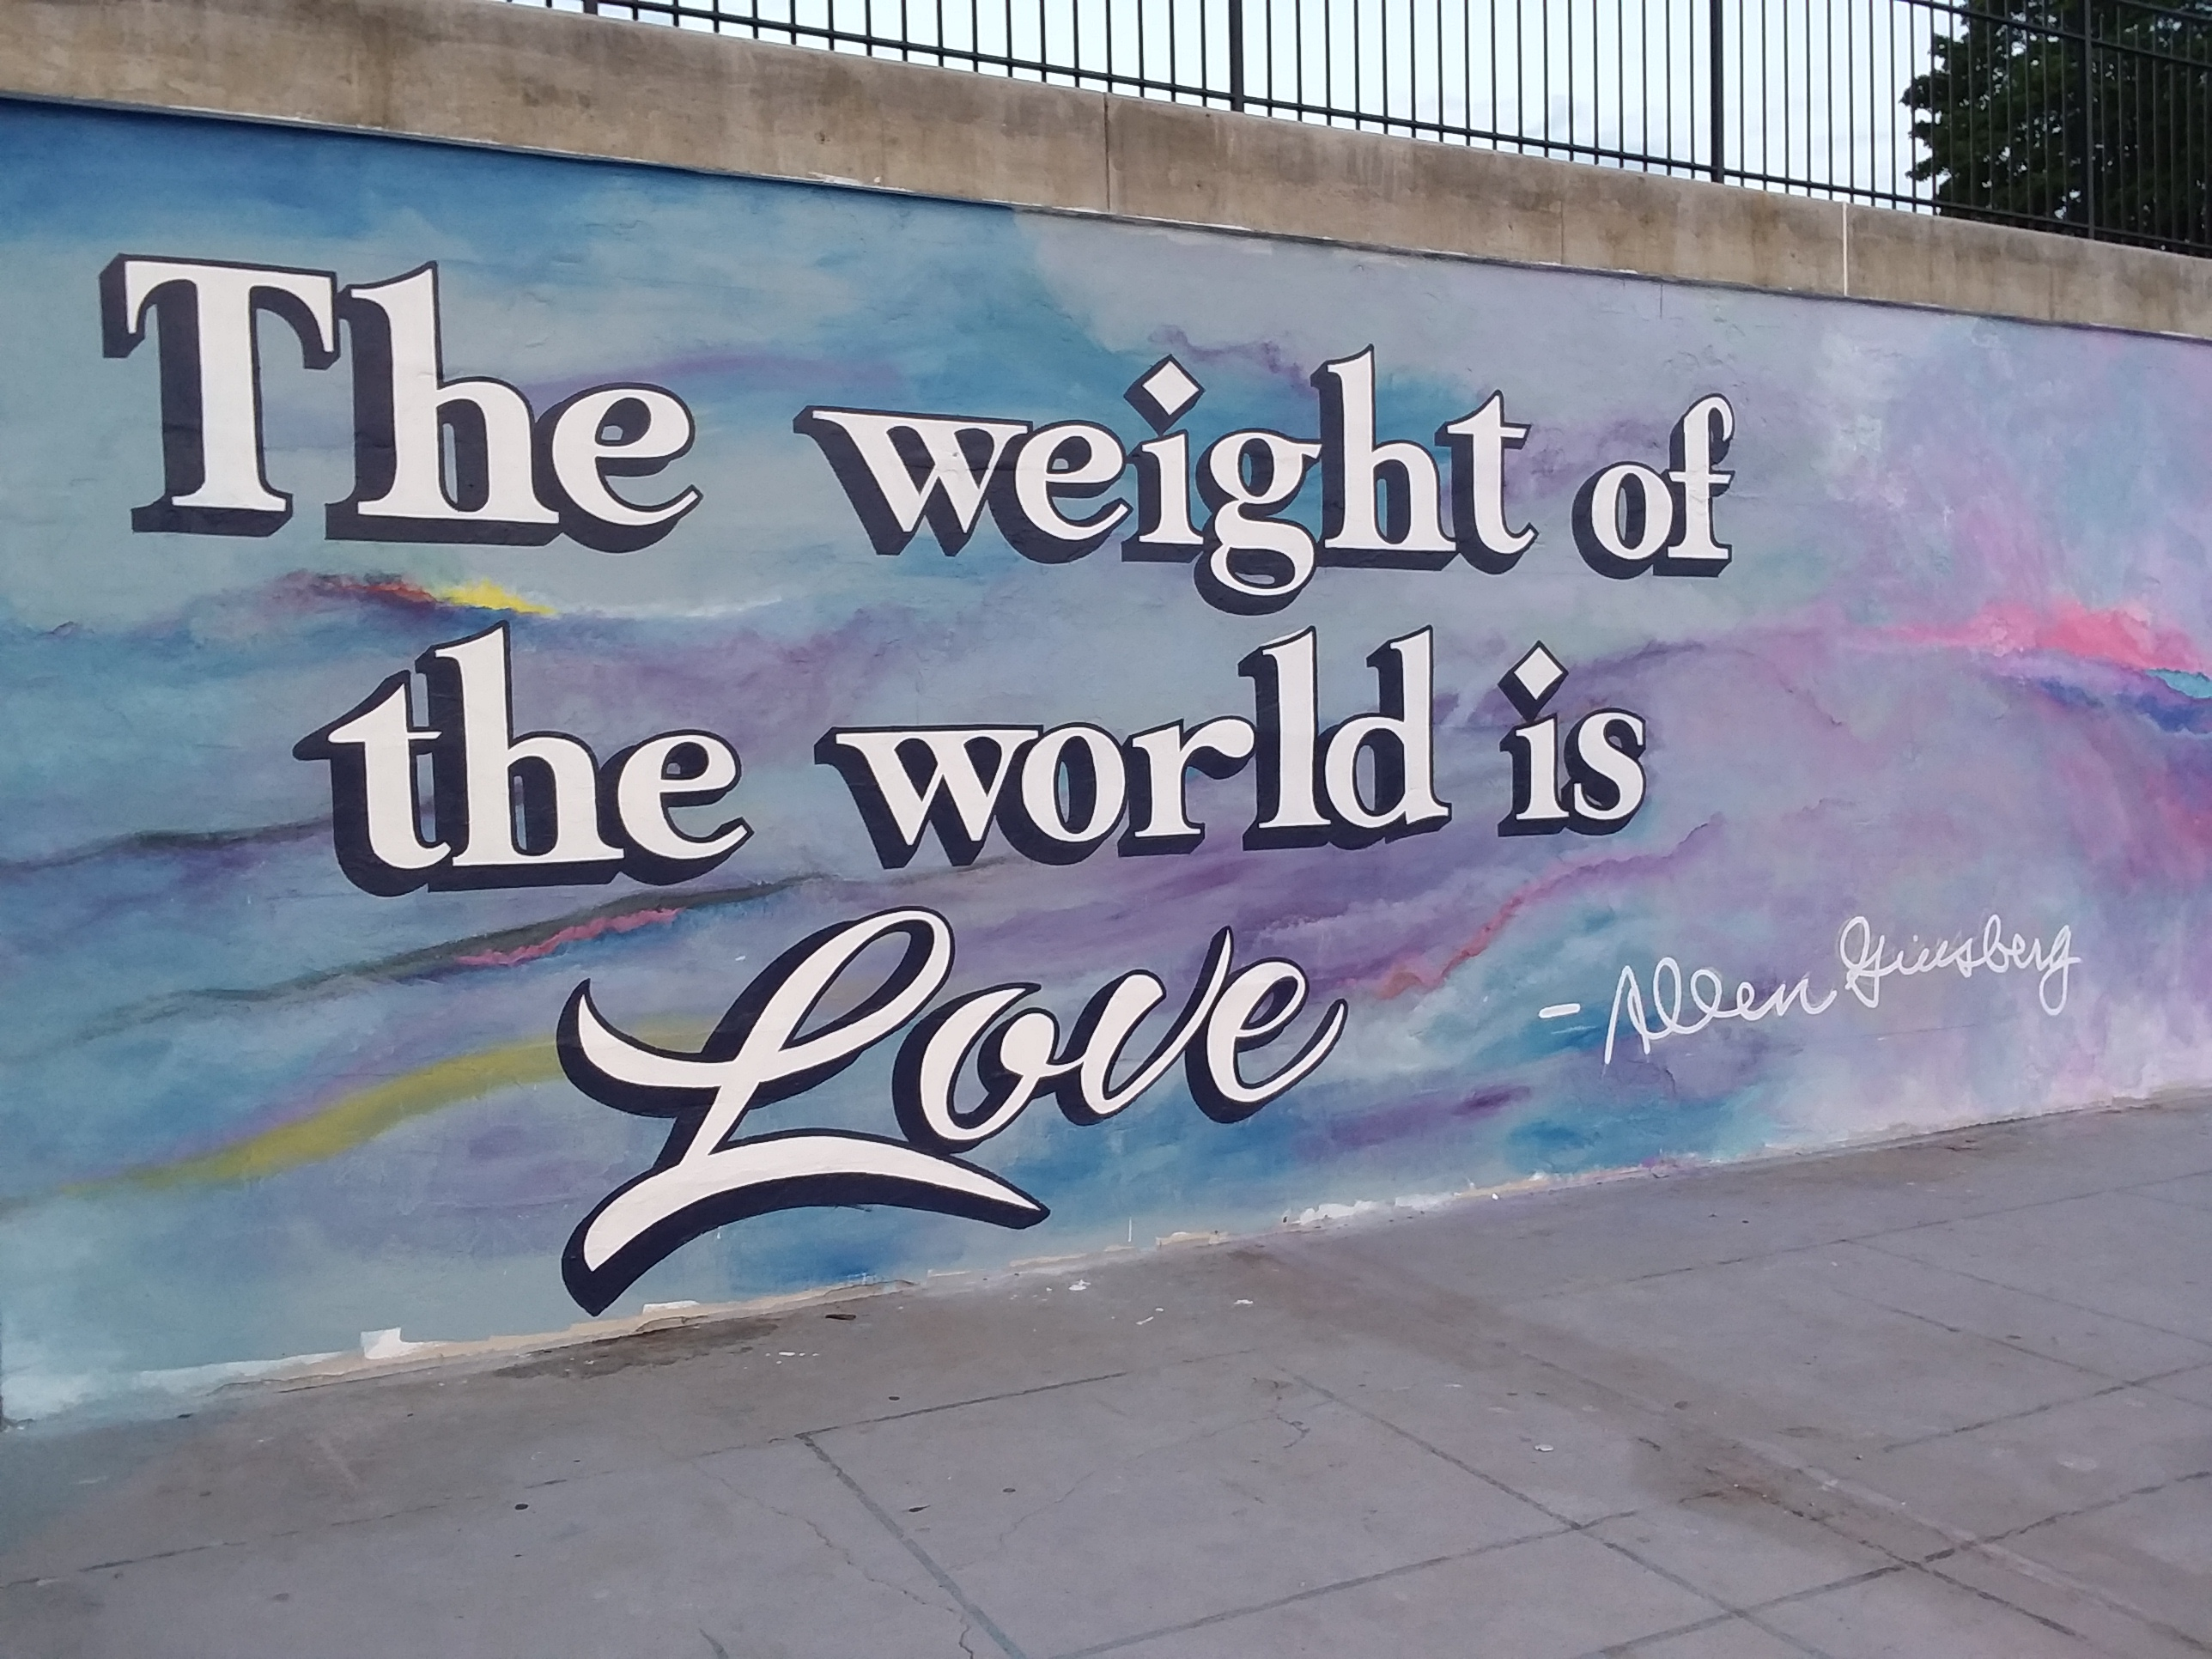 Image of The Weight of the World is Love by Halls That Inspire of Paterson, NJ and David Thompson